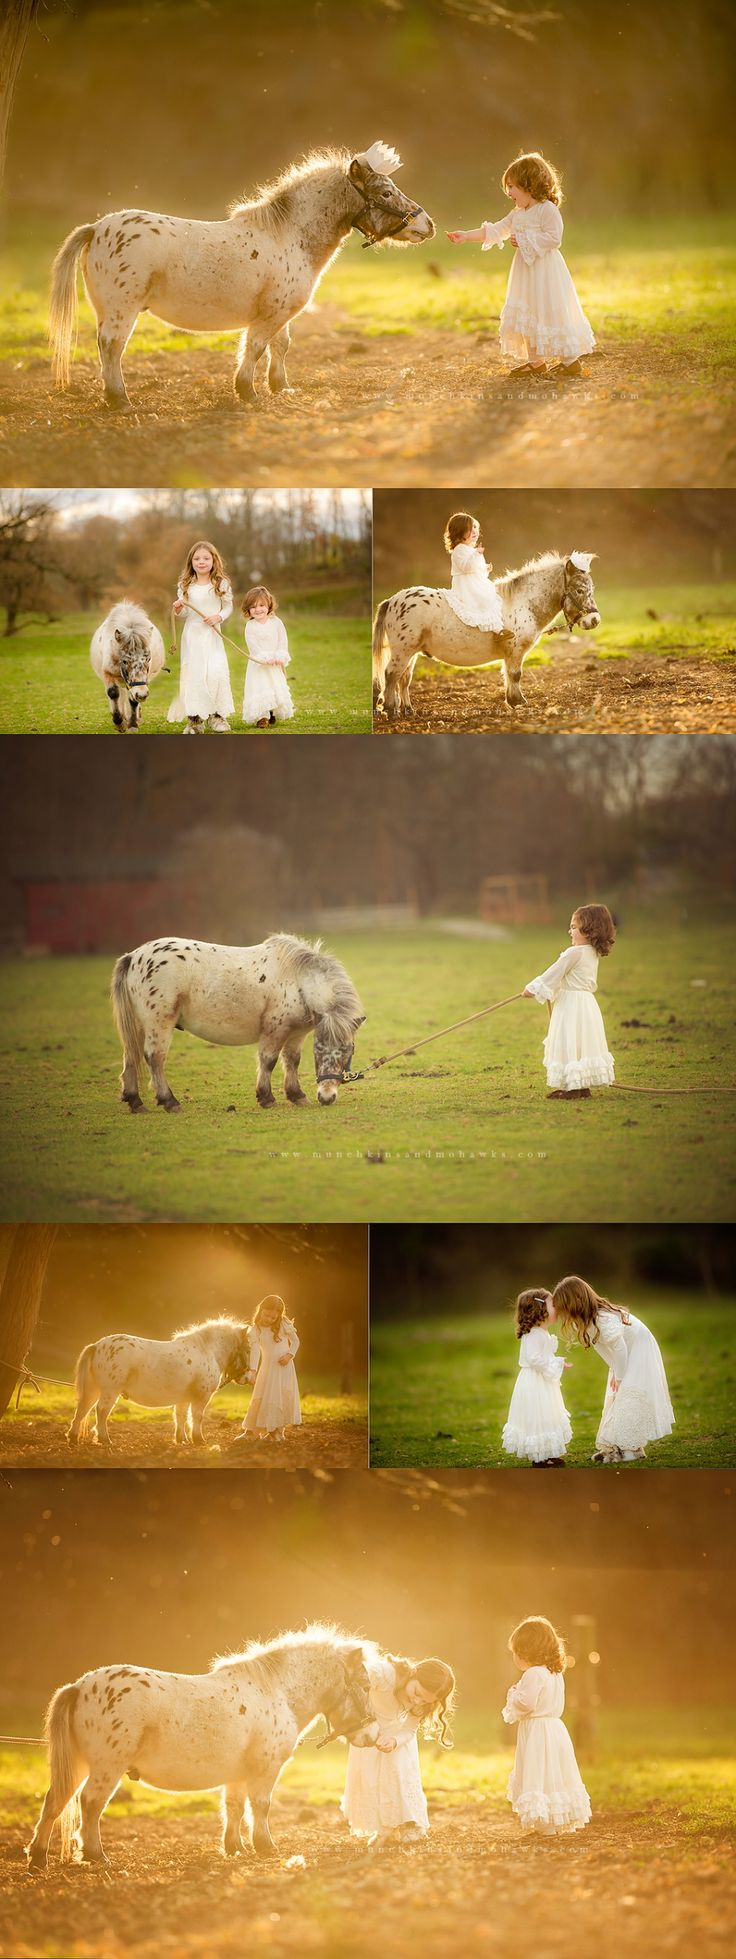 sisters with white horse in back lighting, ahhhh